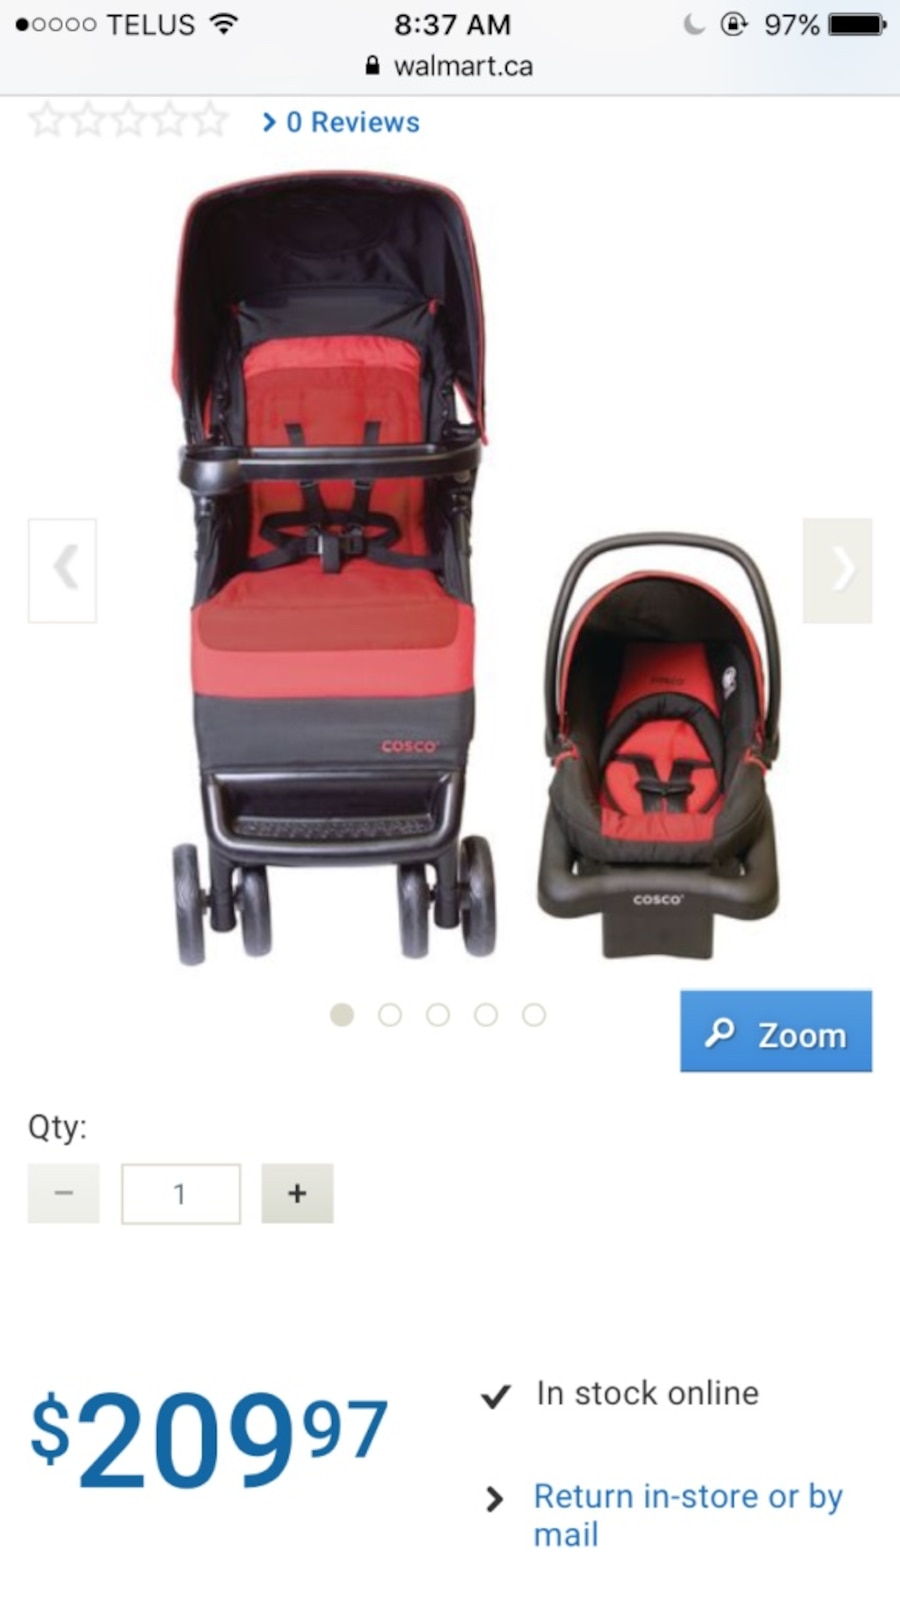 Used Cosco Juvenile Simple Fold Bright Flame Travel System in Calgary